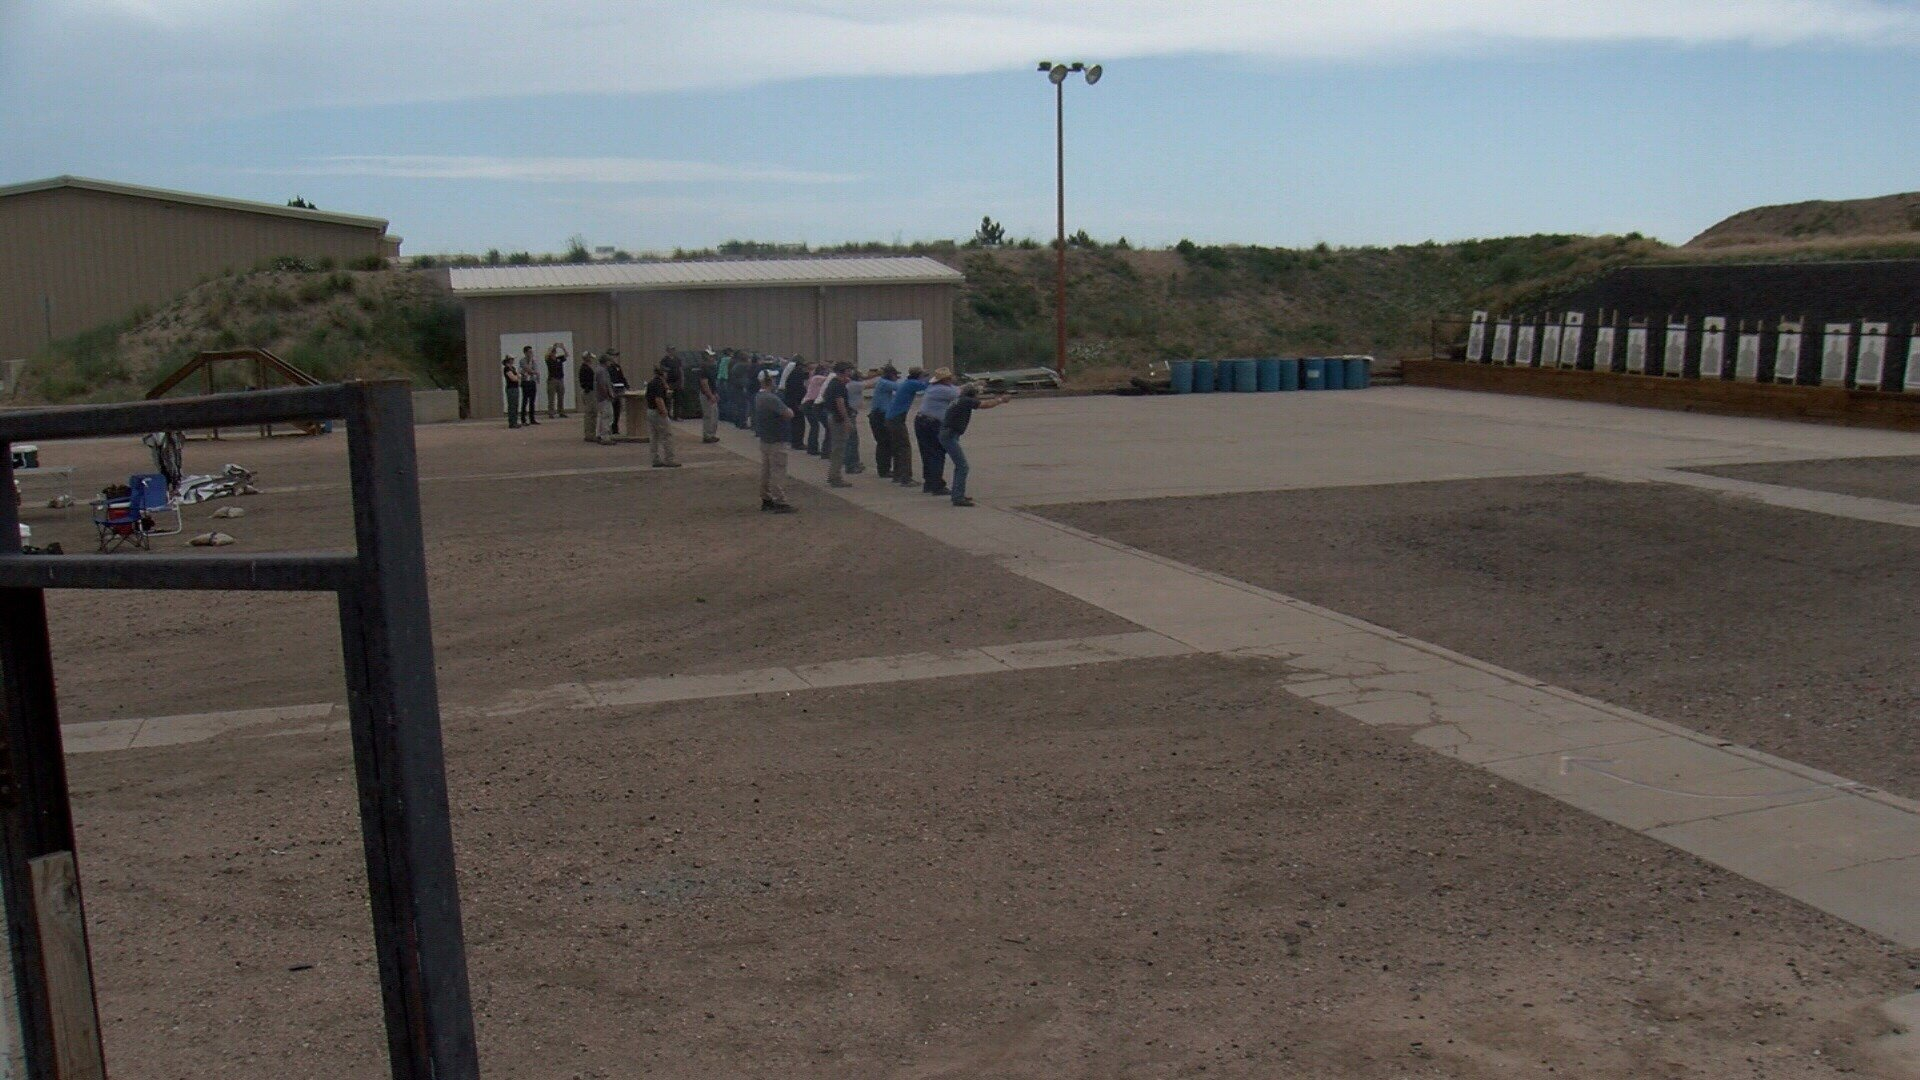 Teachers line up at the shooting range near the Weld County Sheriff's Office.